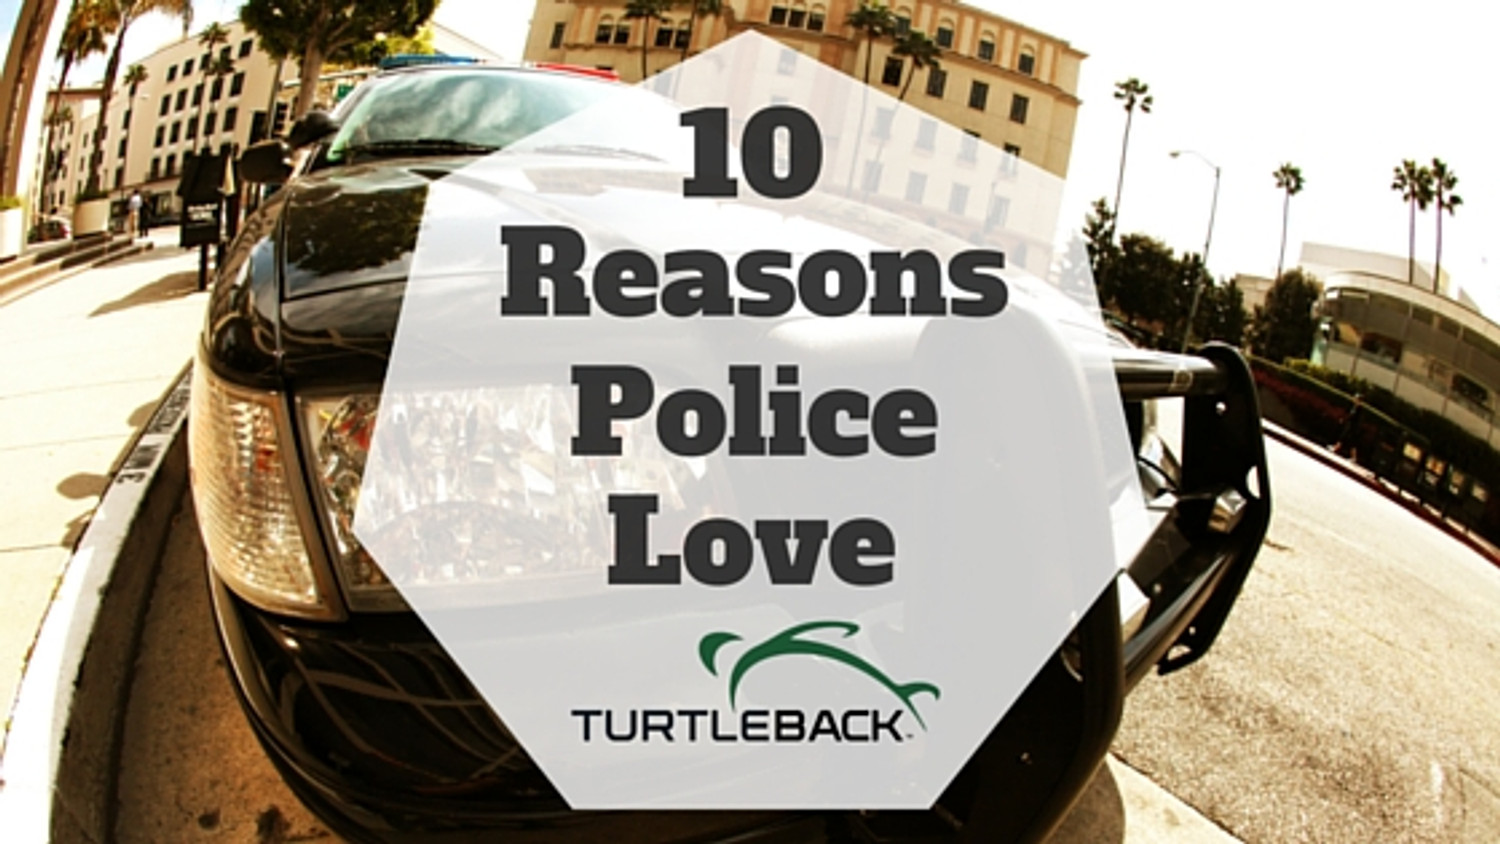 10 Reasons Police Love Turtleback